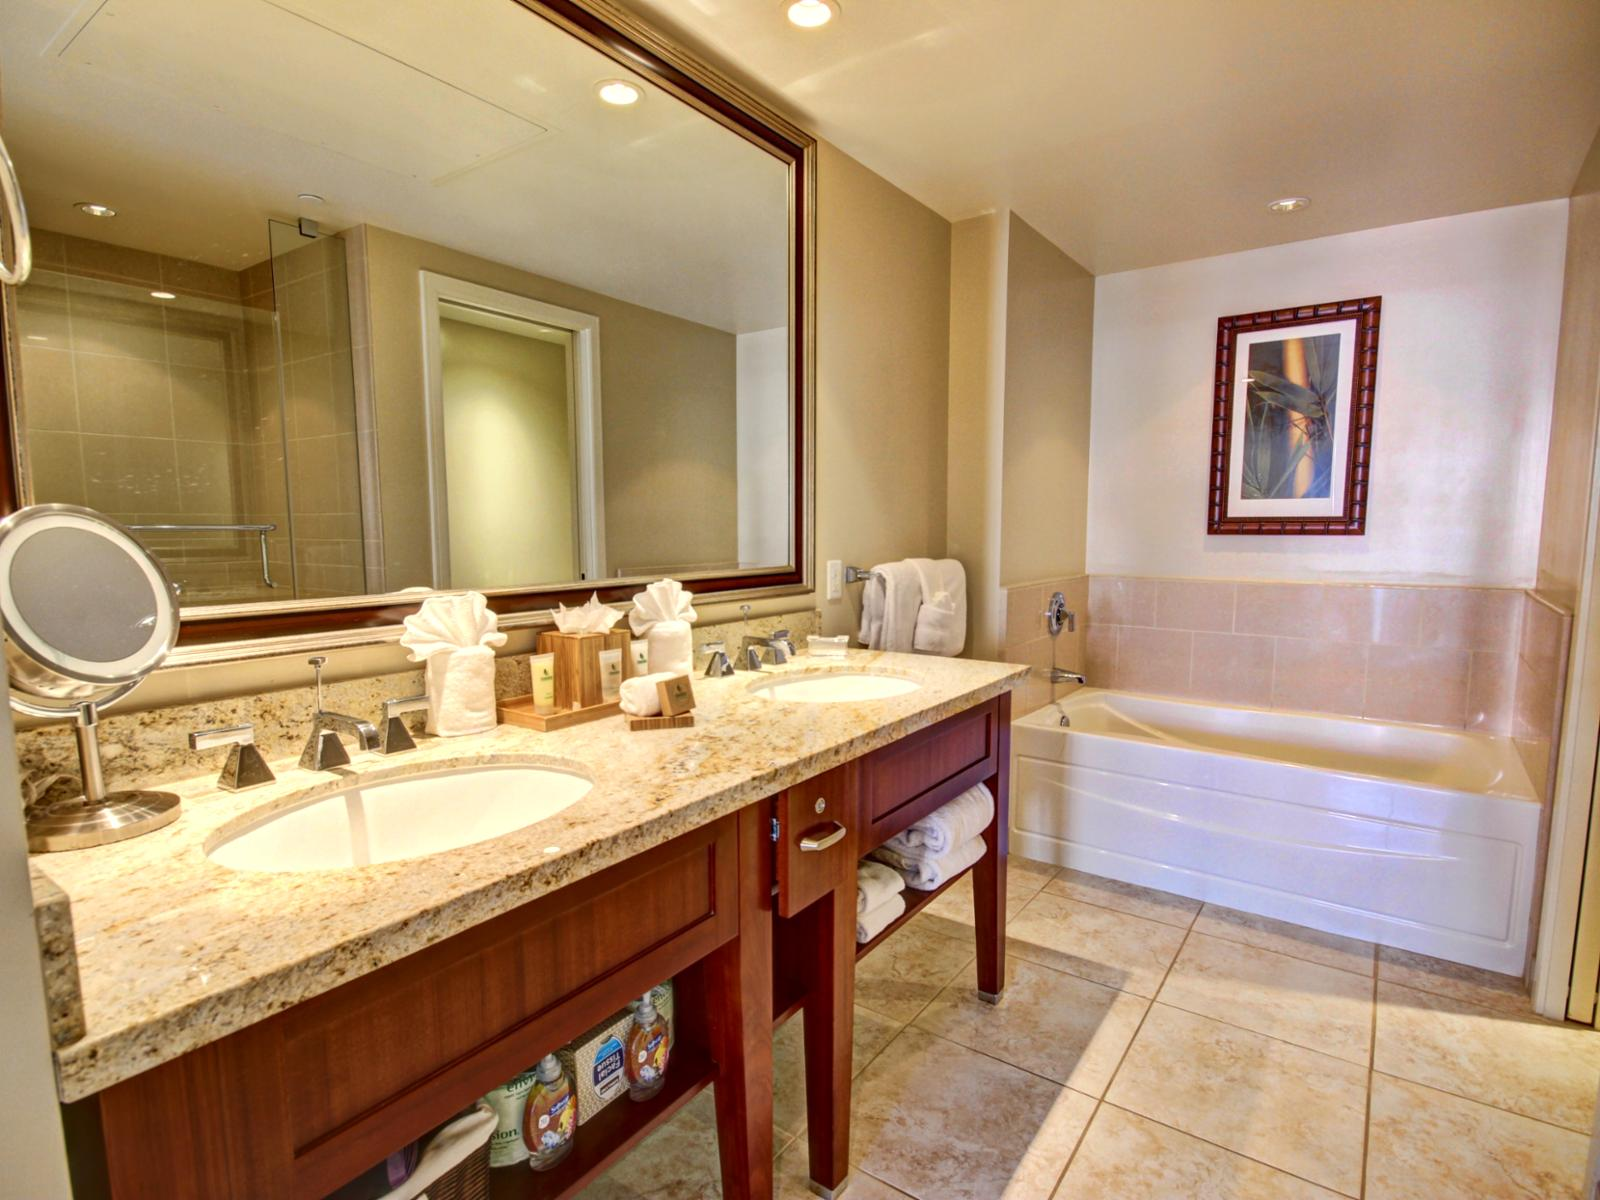 Master bathroom has a separate shower, bathtub and water closet.